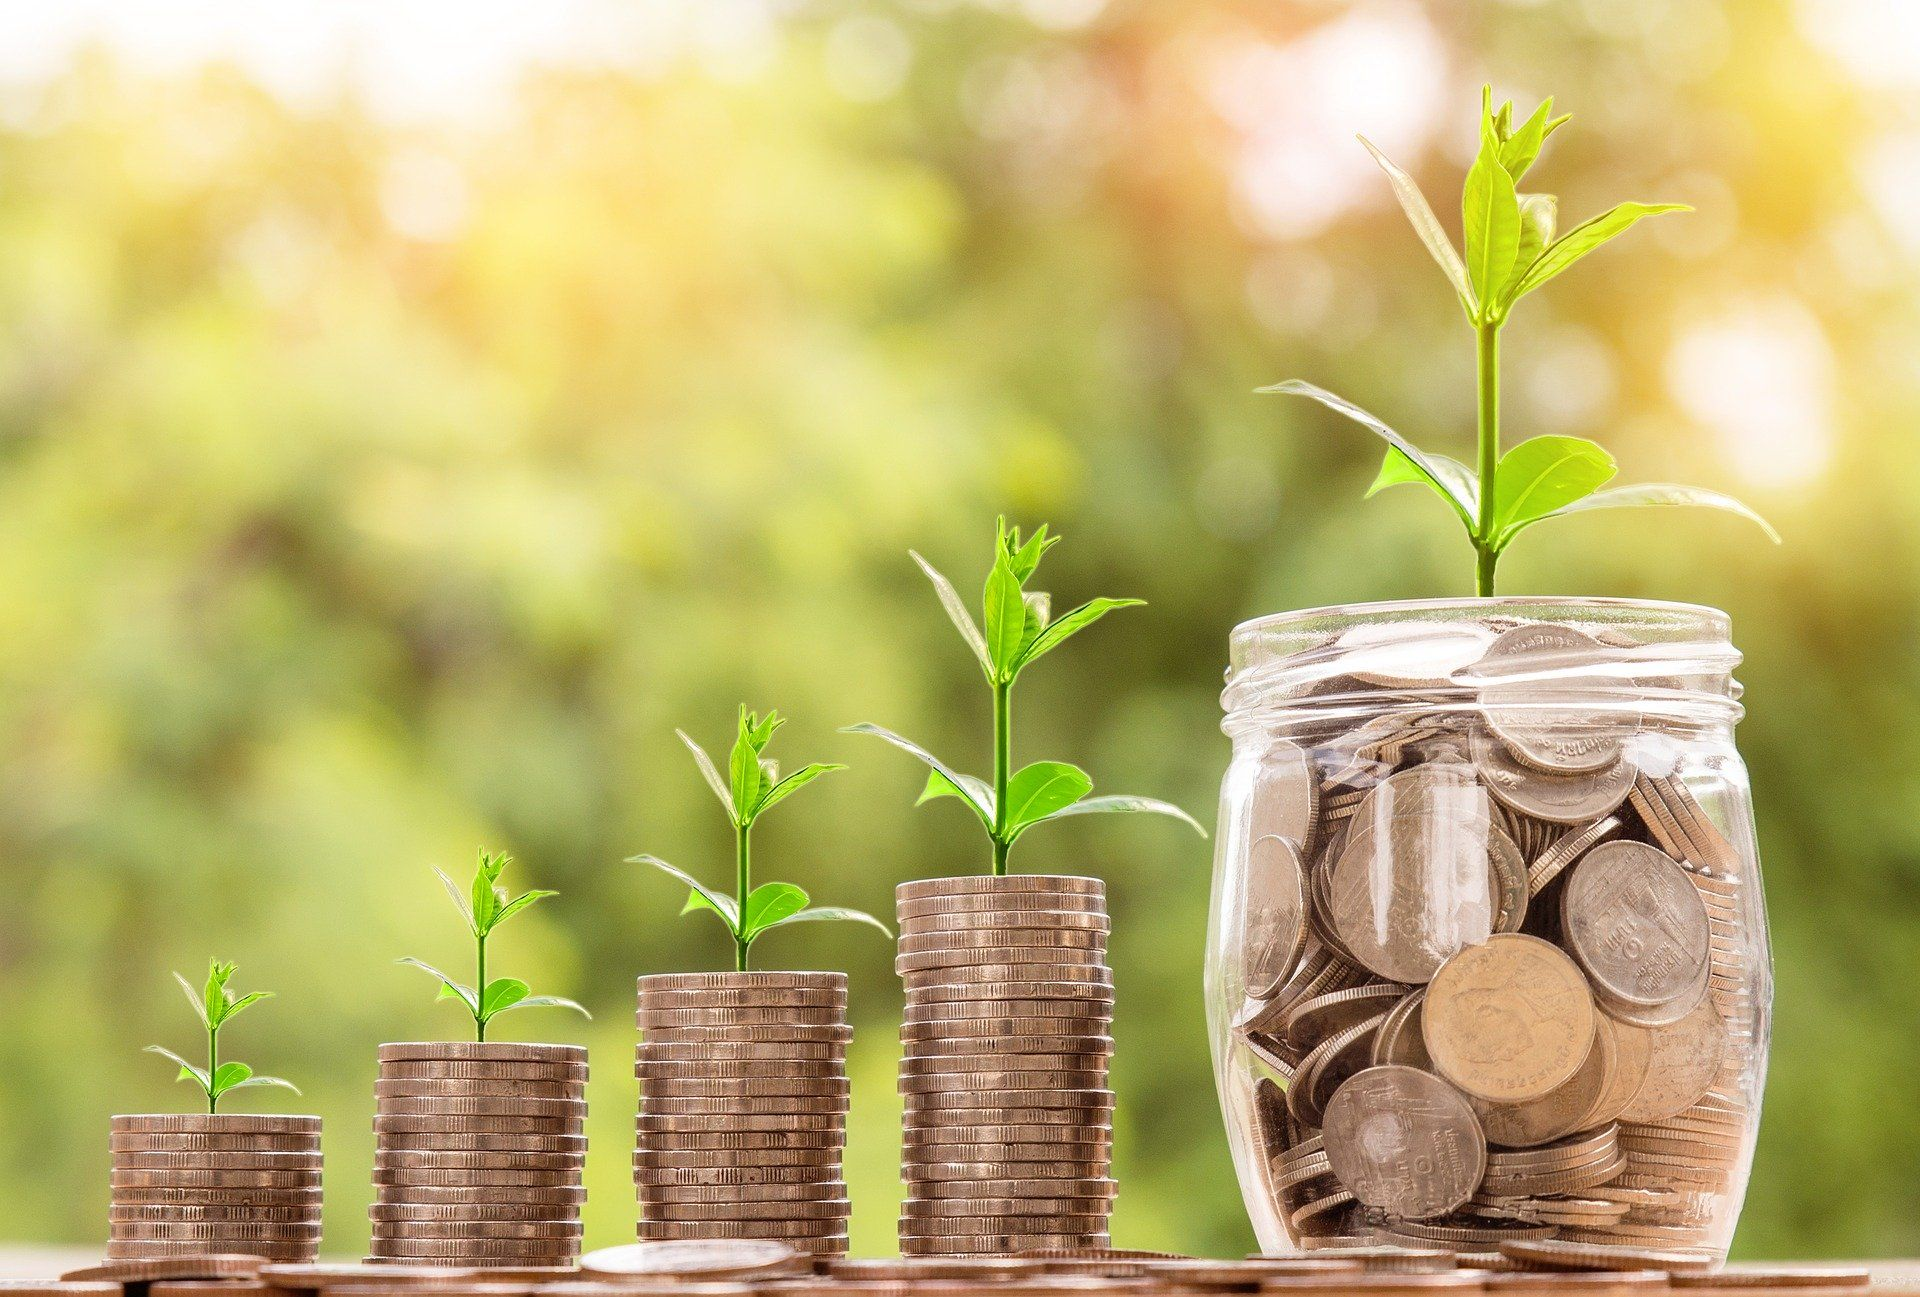 10 Most Profitable Small Businesses - start small, grow up big